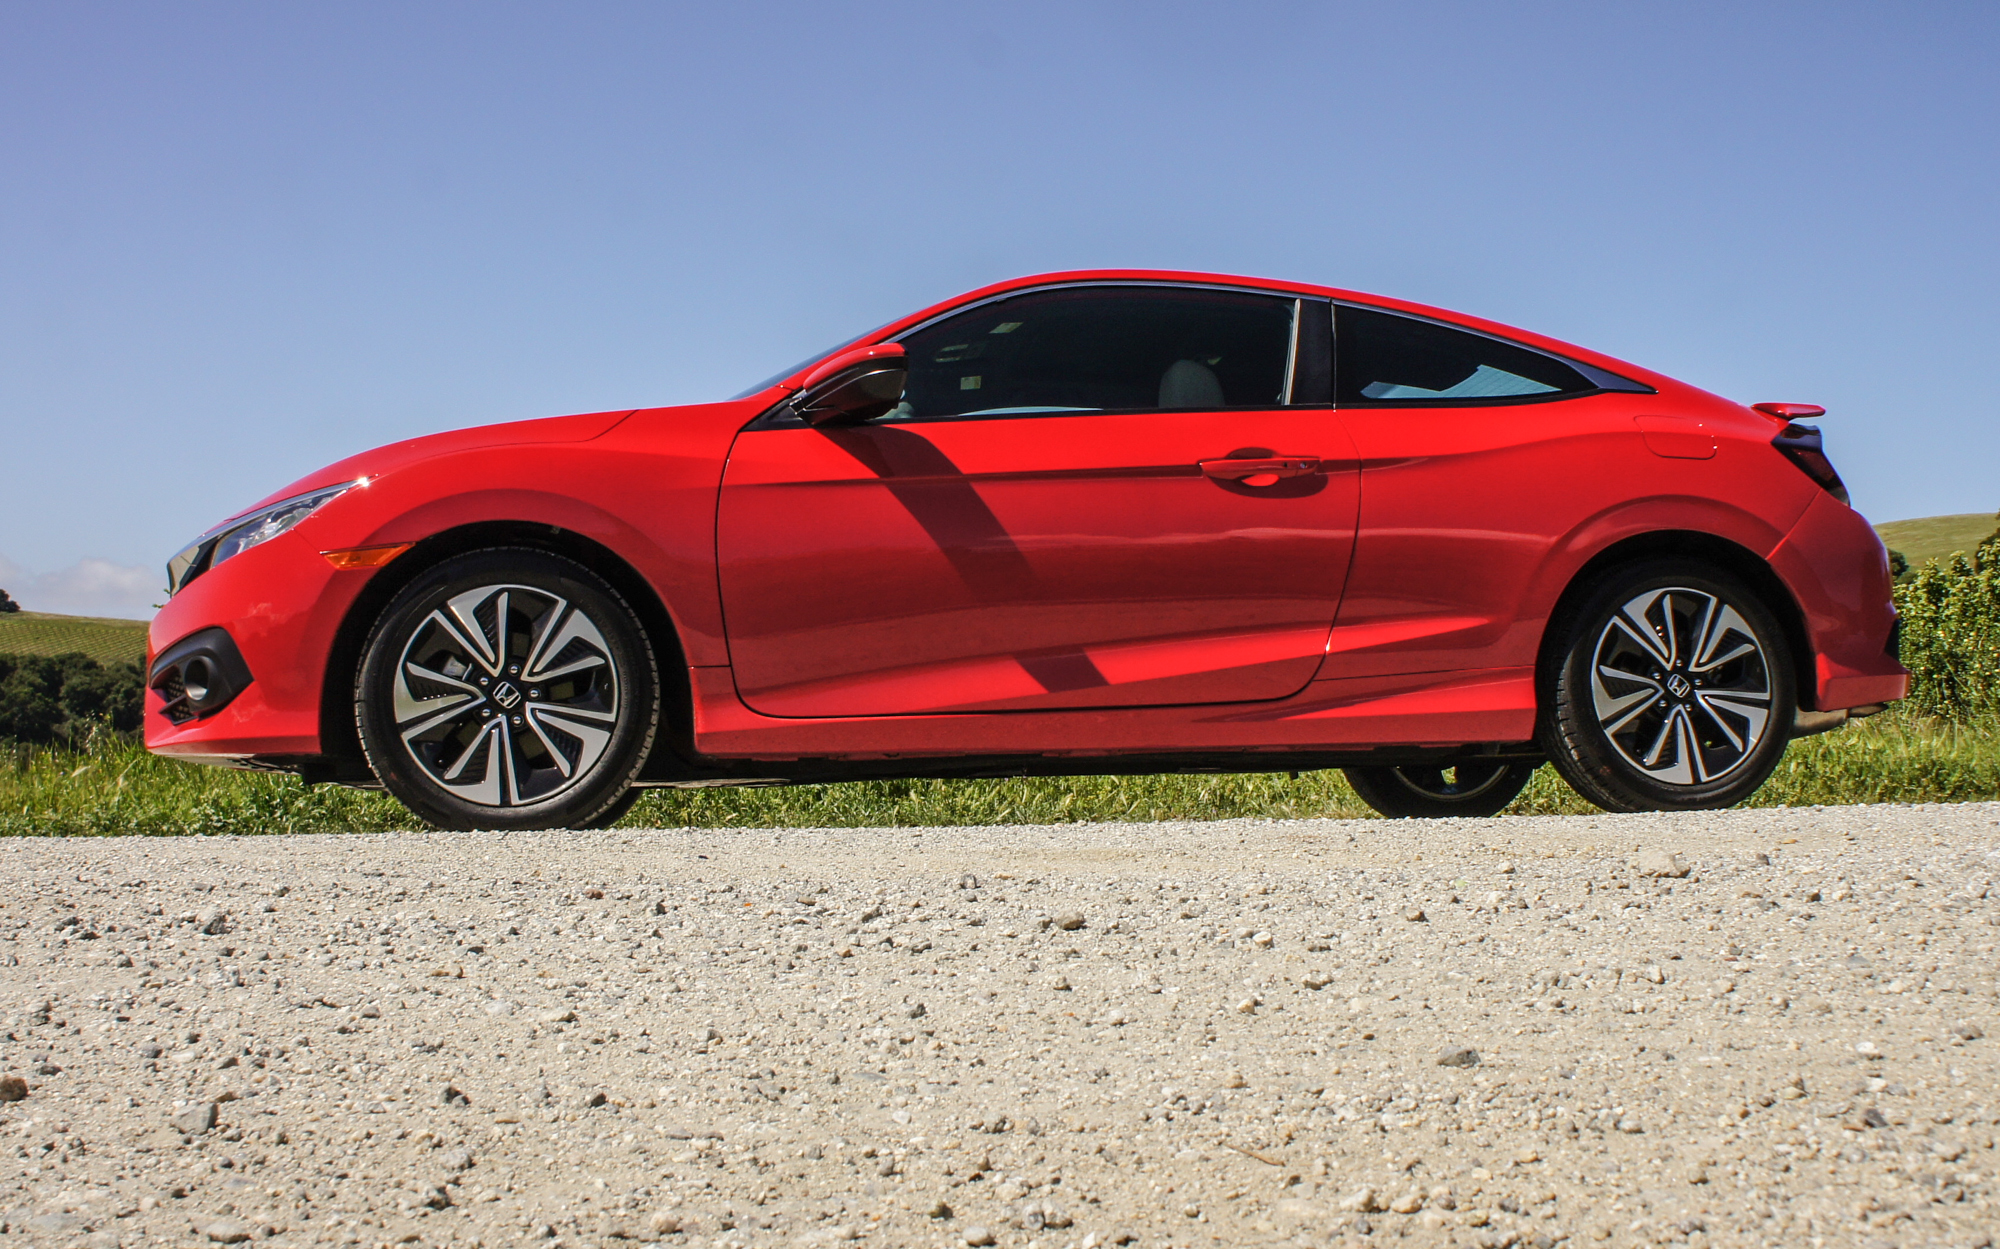 2016 Honda Civic Coupe Release Date, Price and Specs ...